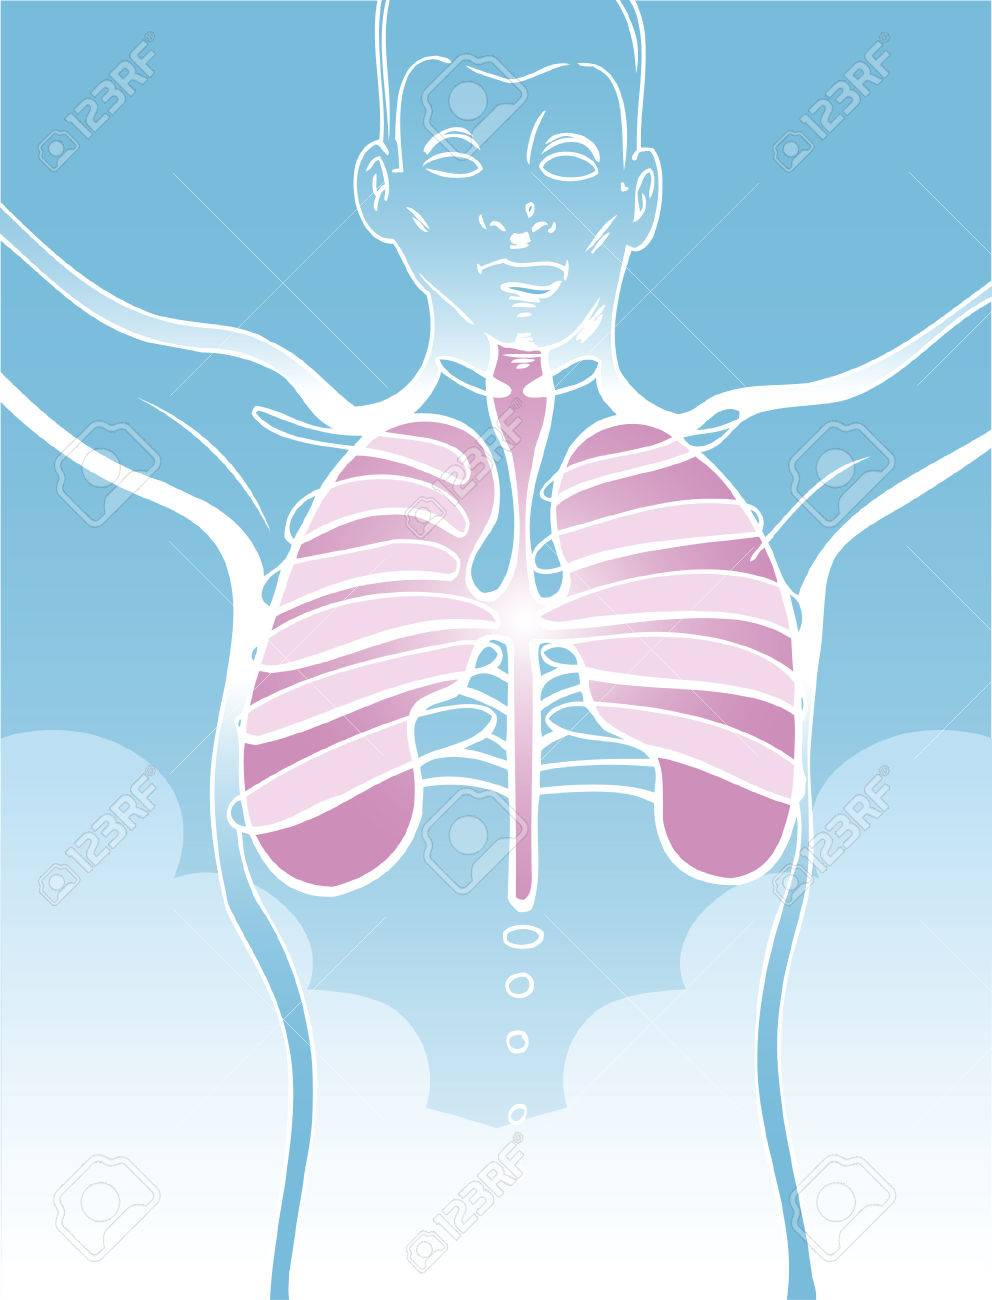 lung drawing of a man with his internal organs. Stock Vector - 5697403